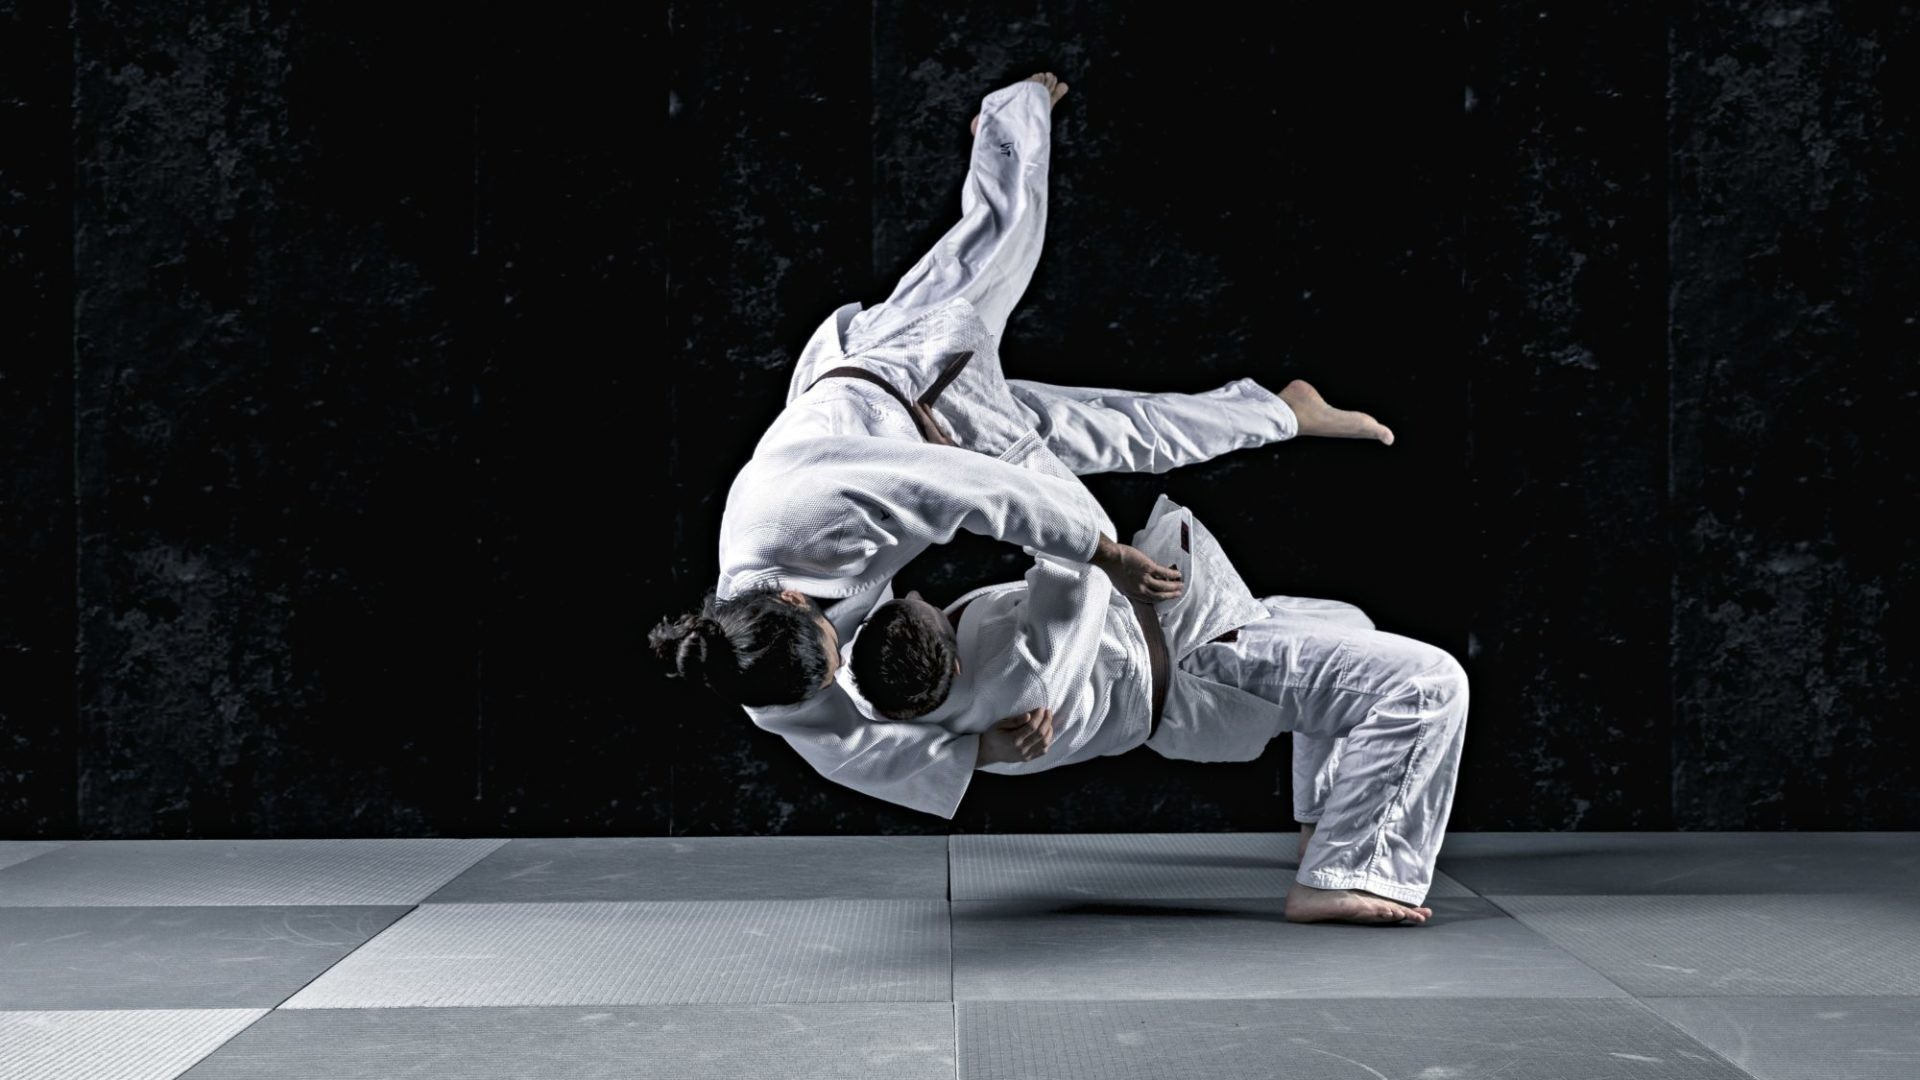 1920x1080 Wallpaper Quote Judo Wallpapers 68 Background Pictures